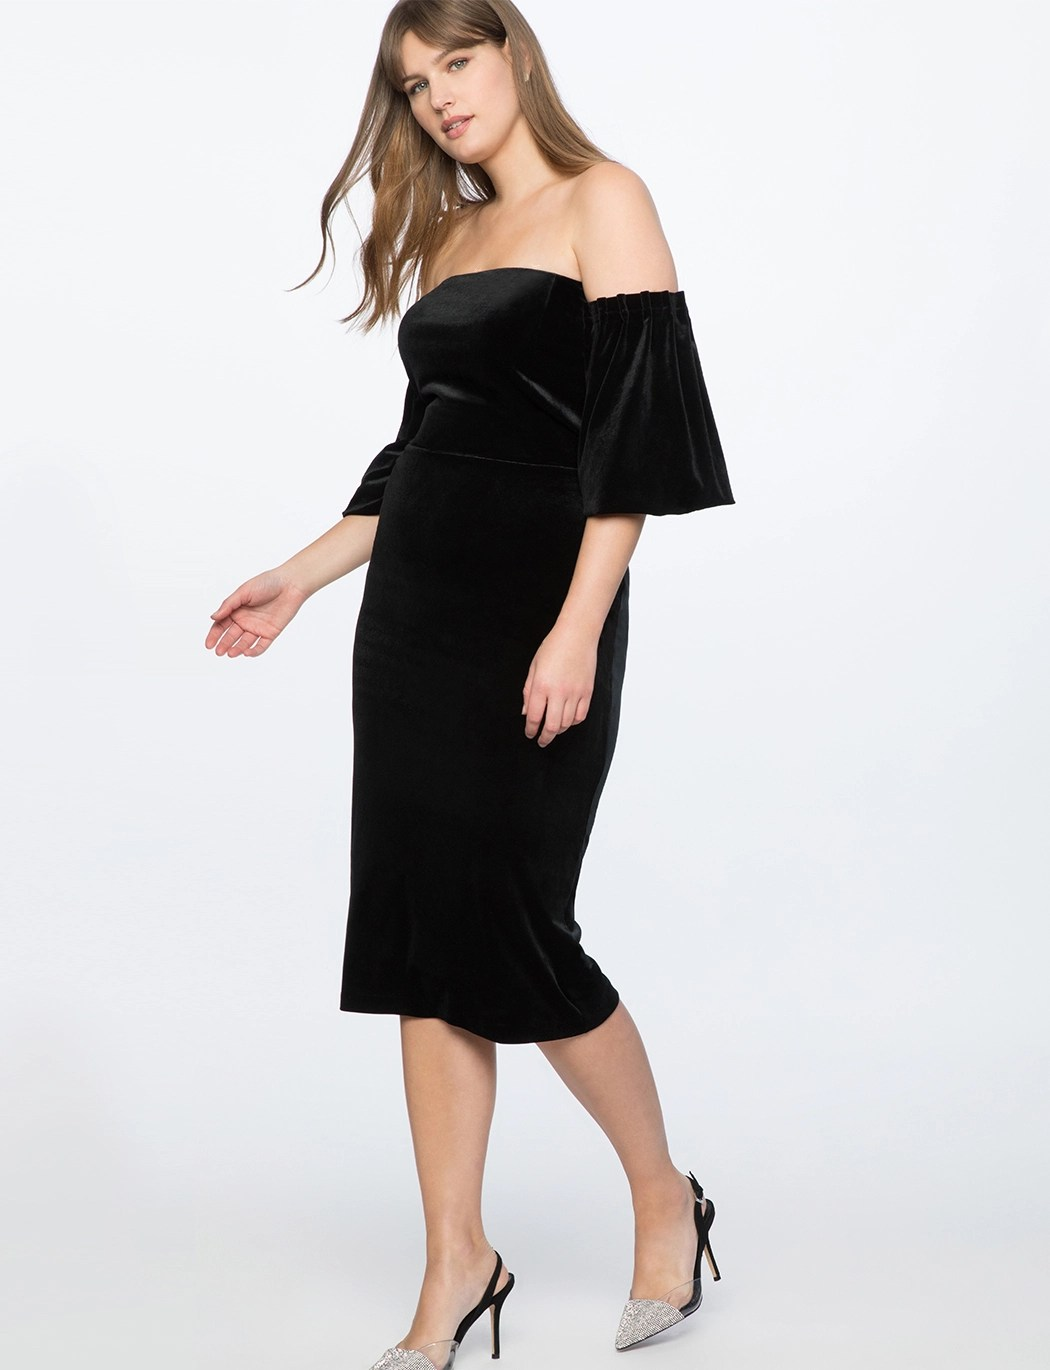 Strapless Velvet Dress with Full Sleeves 8